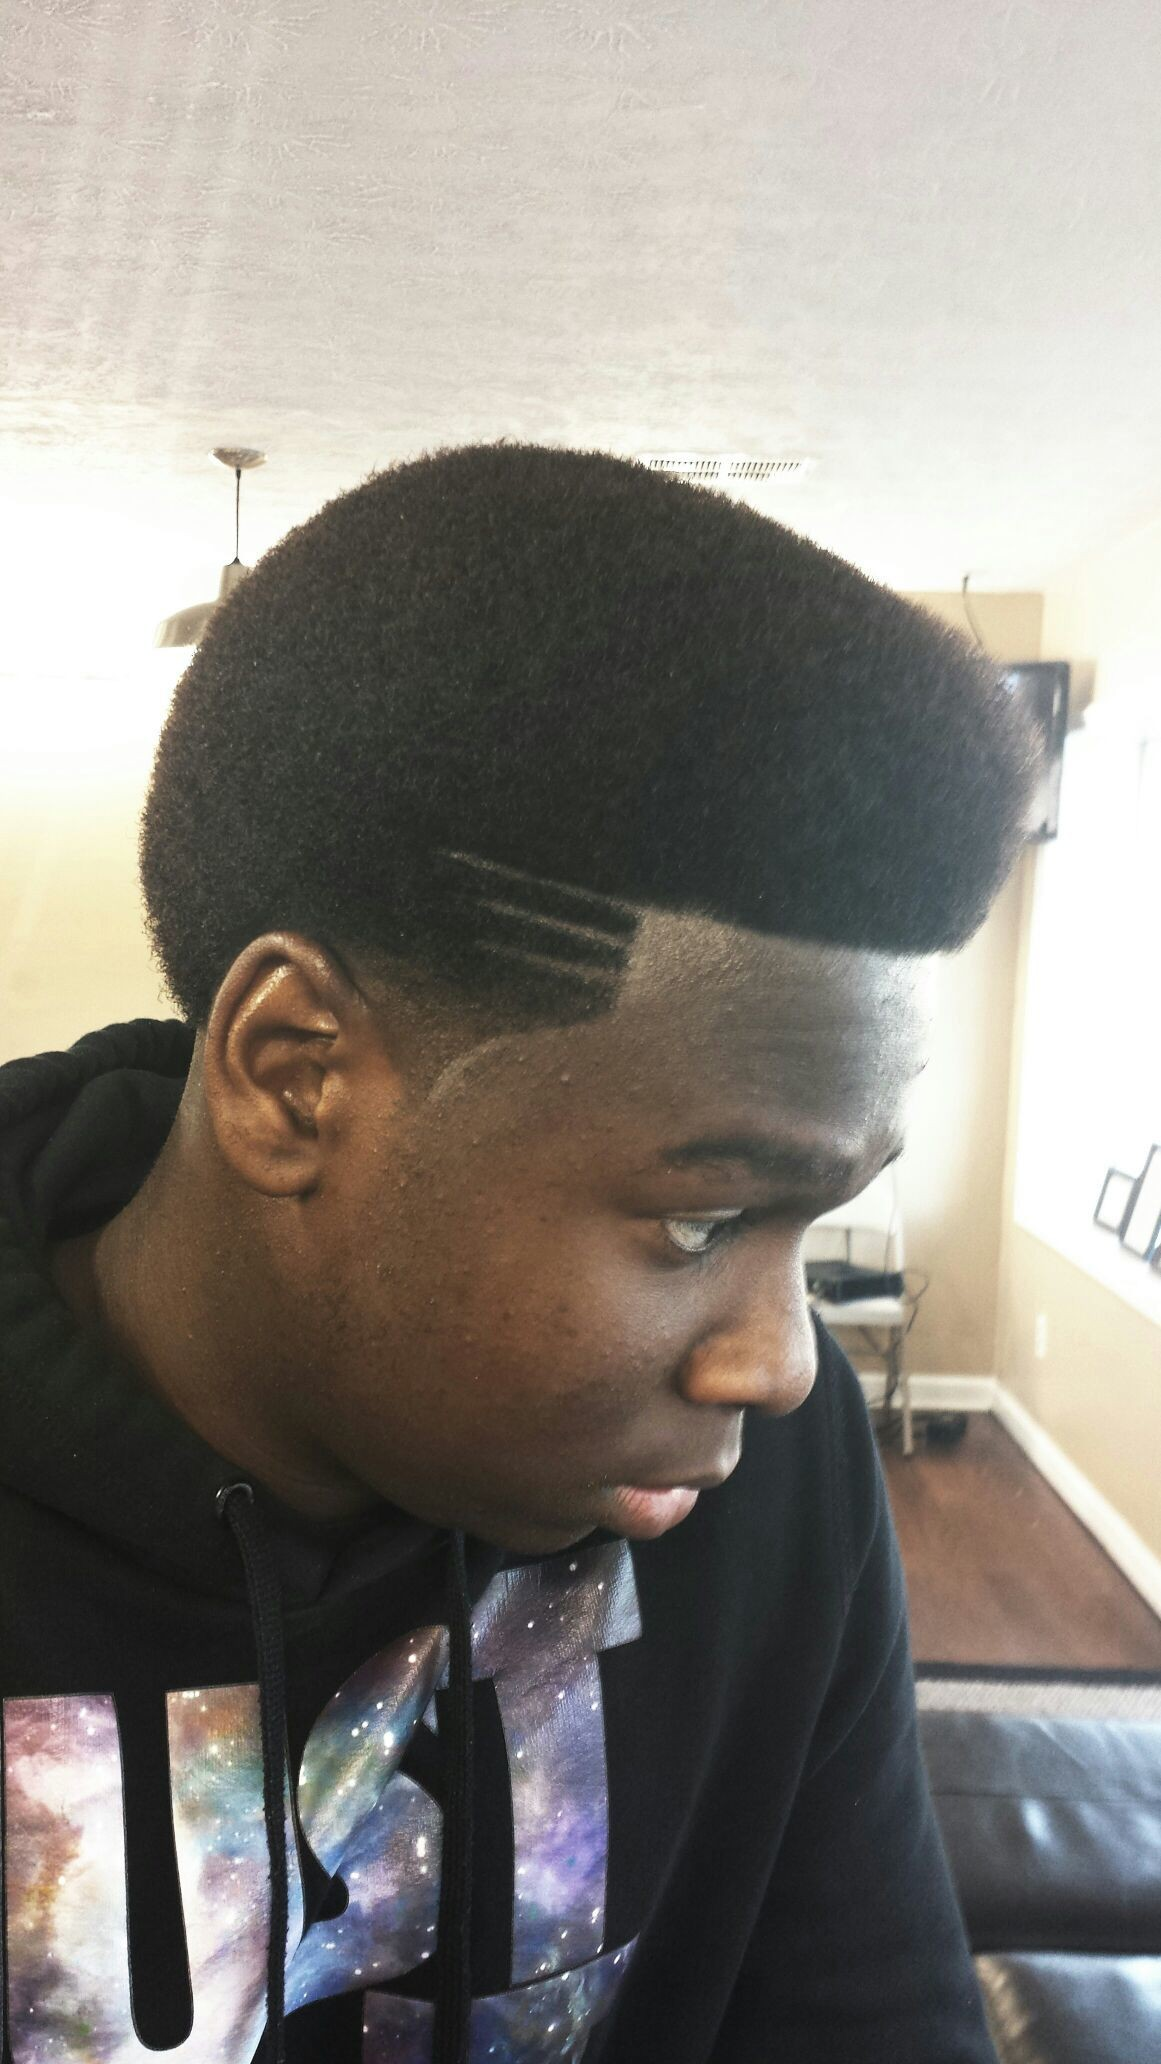 Hottedt stylz & cuts